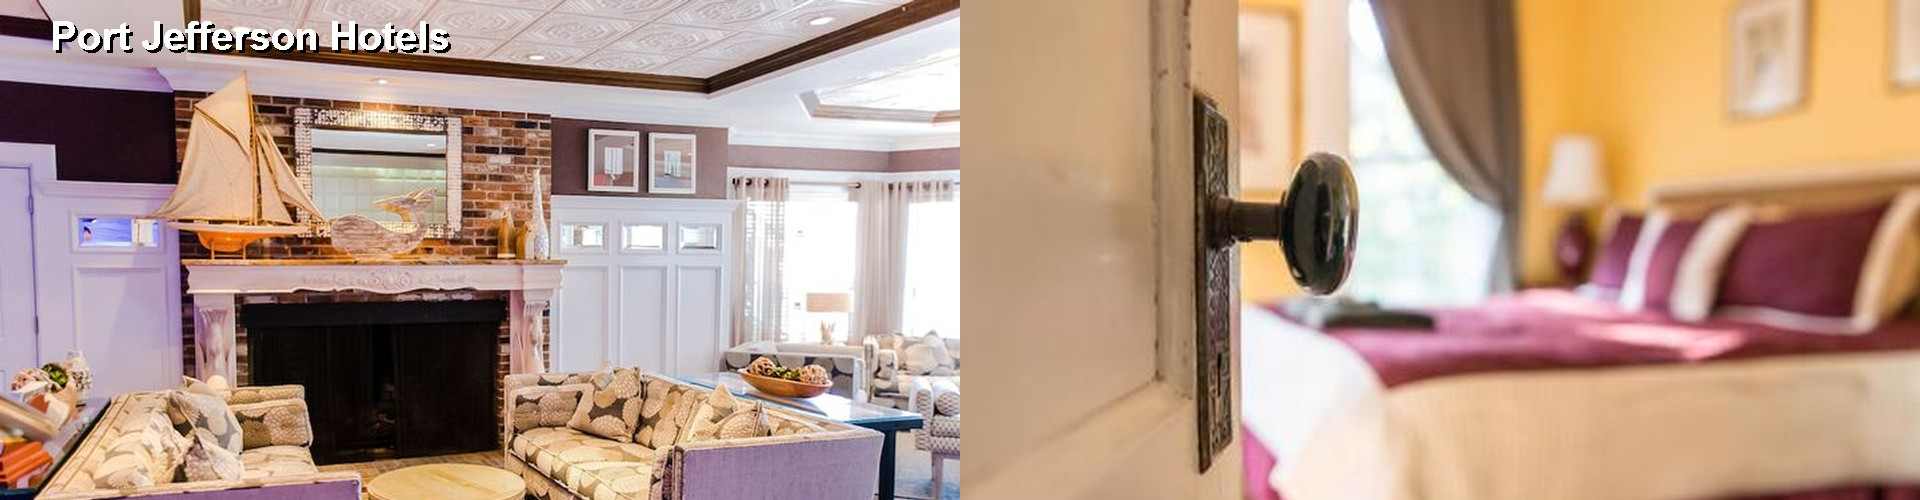 5 Best Hotels near Port Jefferson